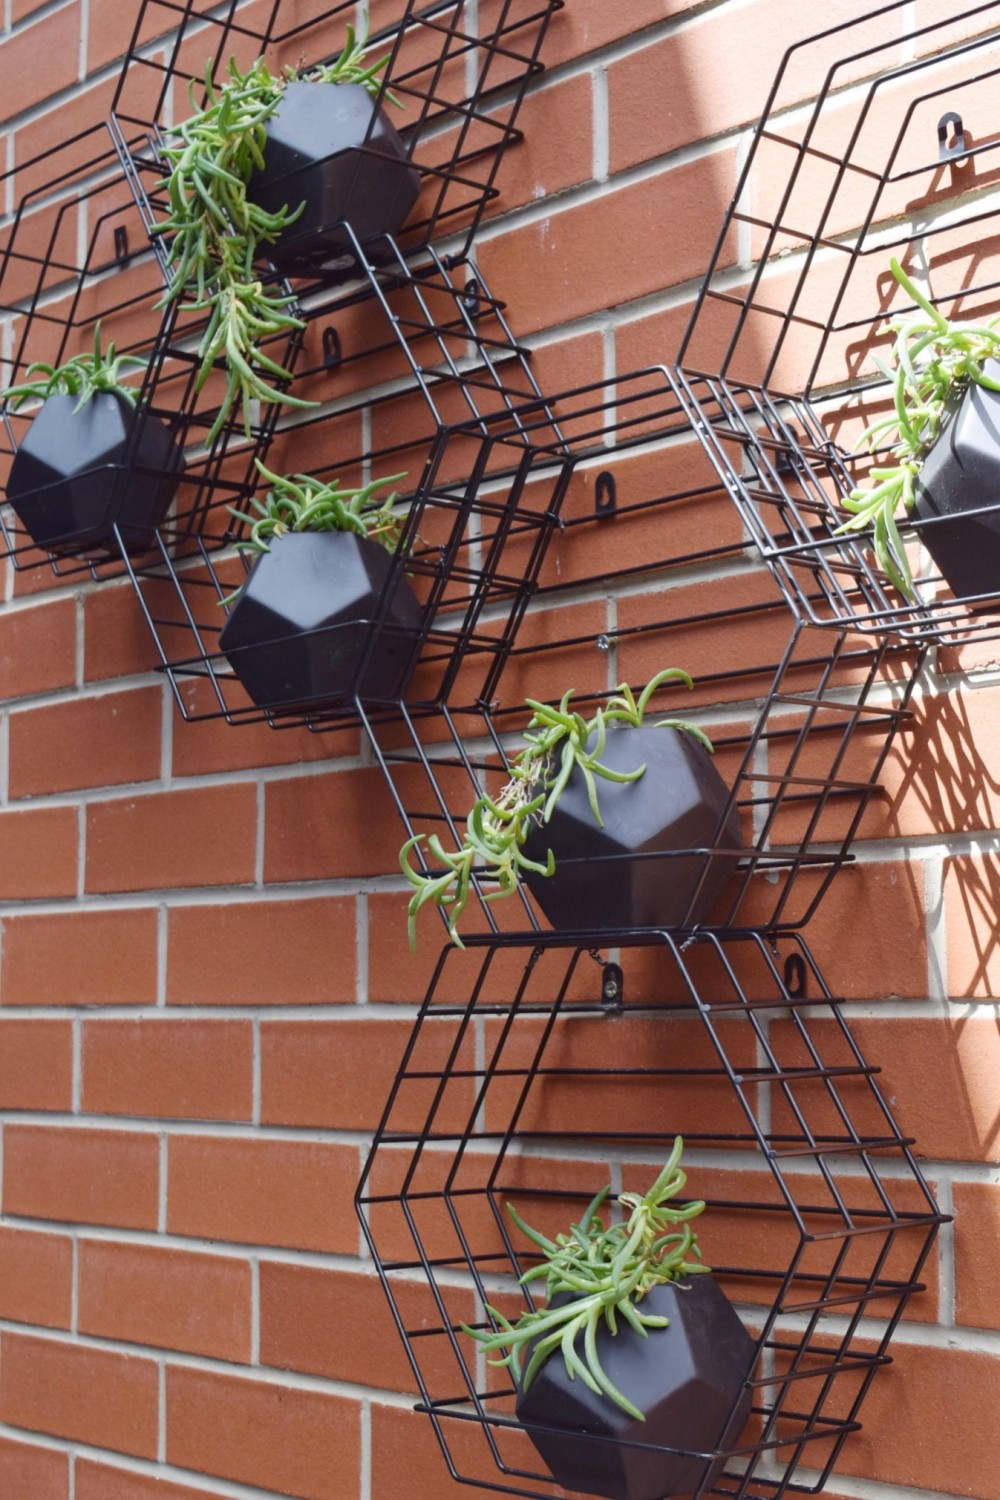 Kmart Hack: Beehive Hexagon Vertical Garden